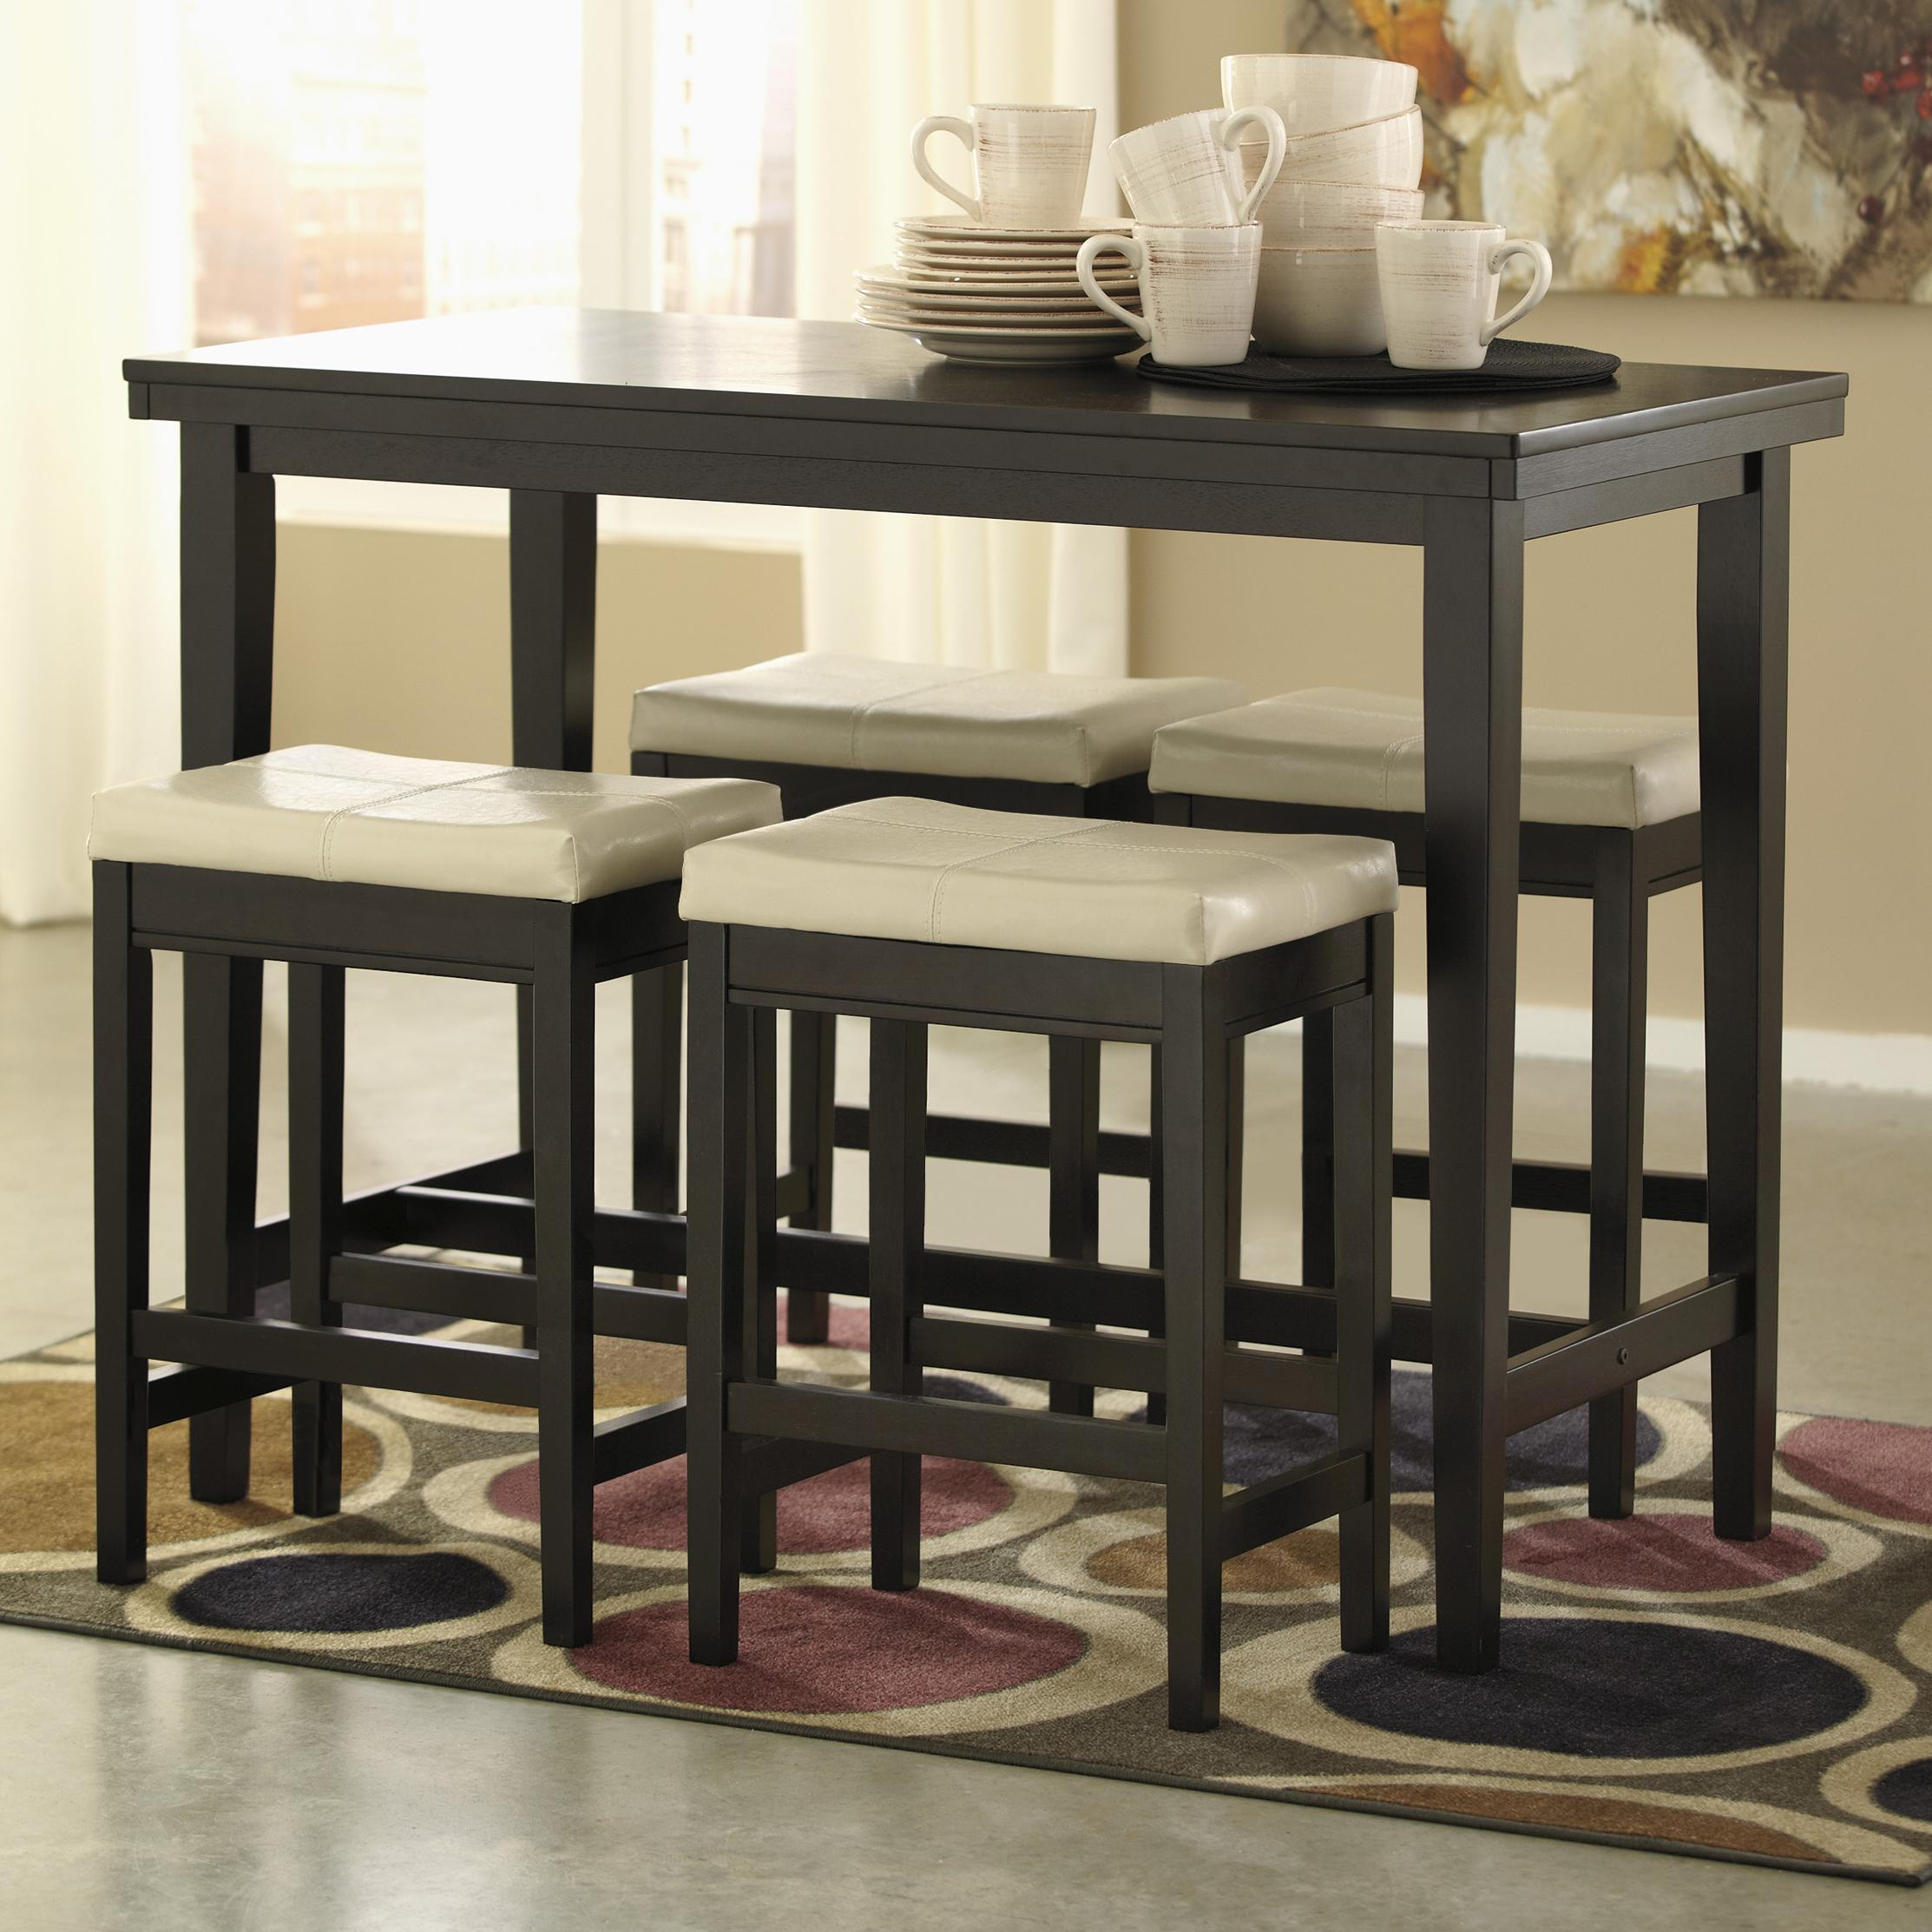 Signature Design by Ashley Kimonte 5-Piece Counter Table Set with Stools - Item Number: D250-13+4x124